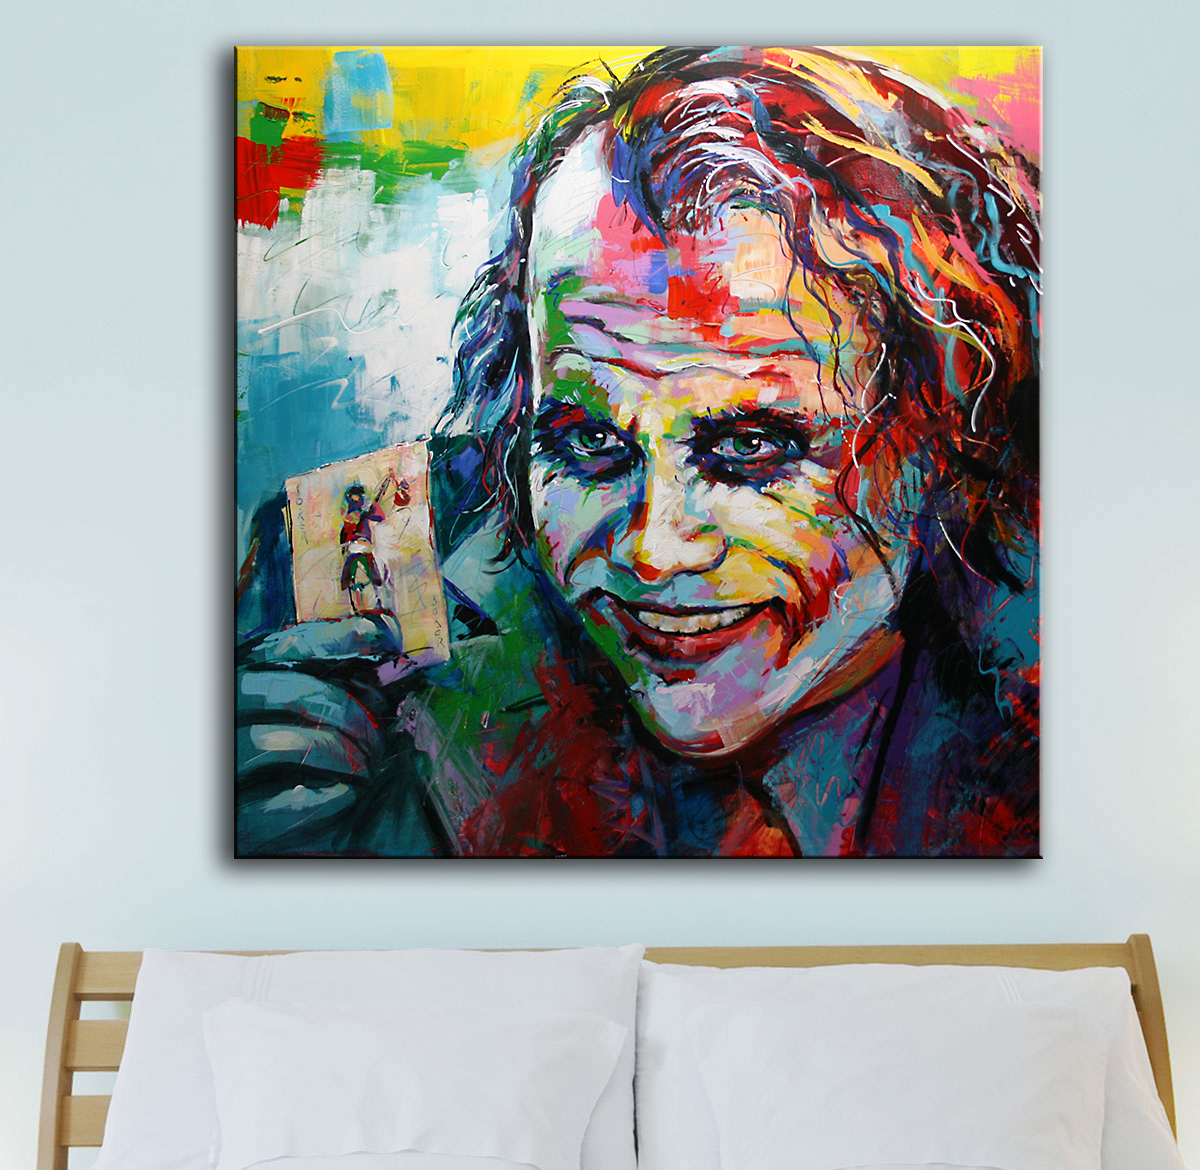 Us 7 02 32 Off Large Size Print Oil Painting Wall Painting The Joker Pop Art Home Decorative Wall Art Picture For Living Room Painting No Frame In